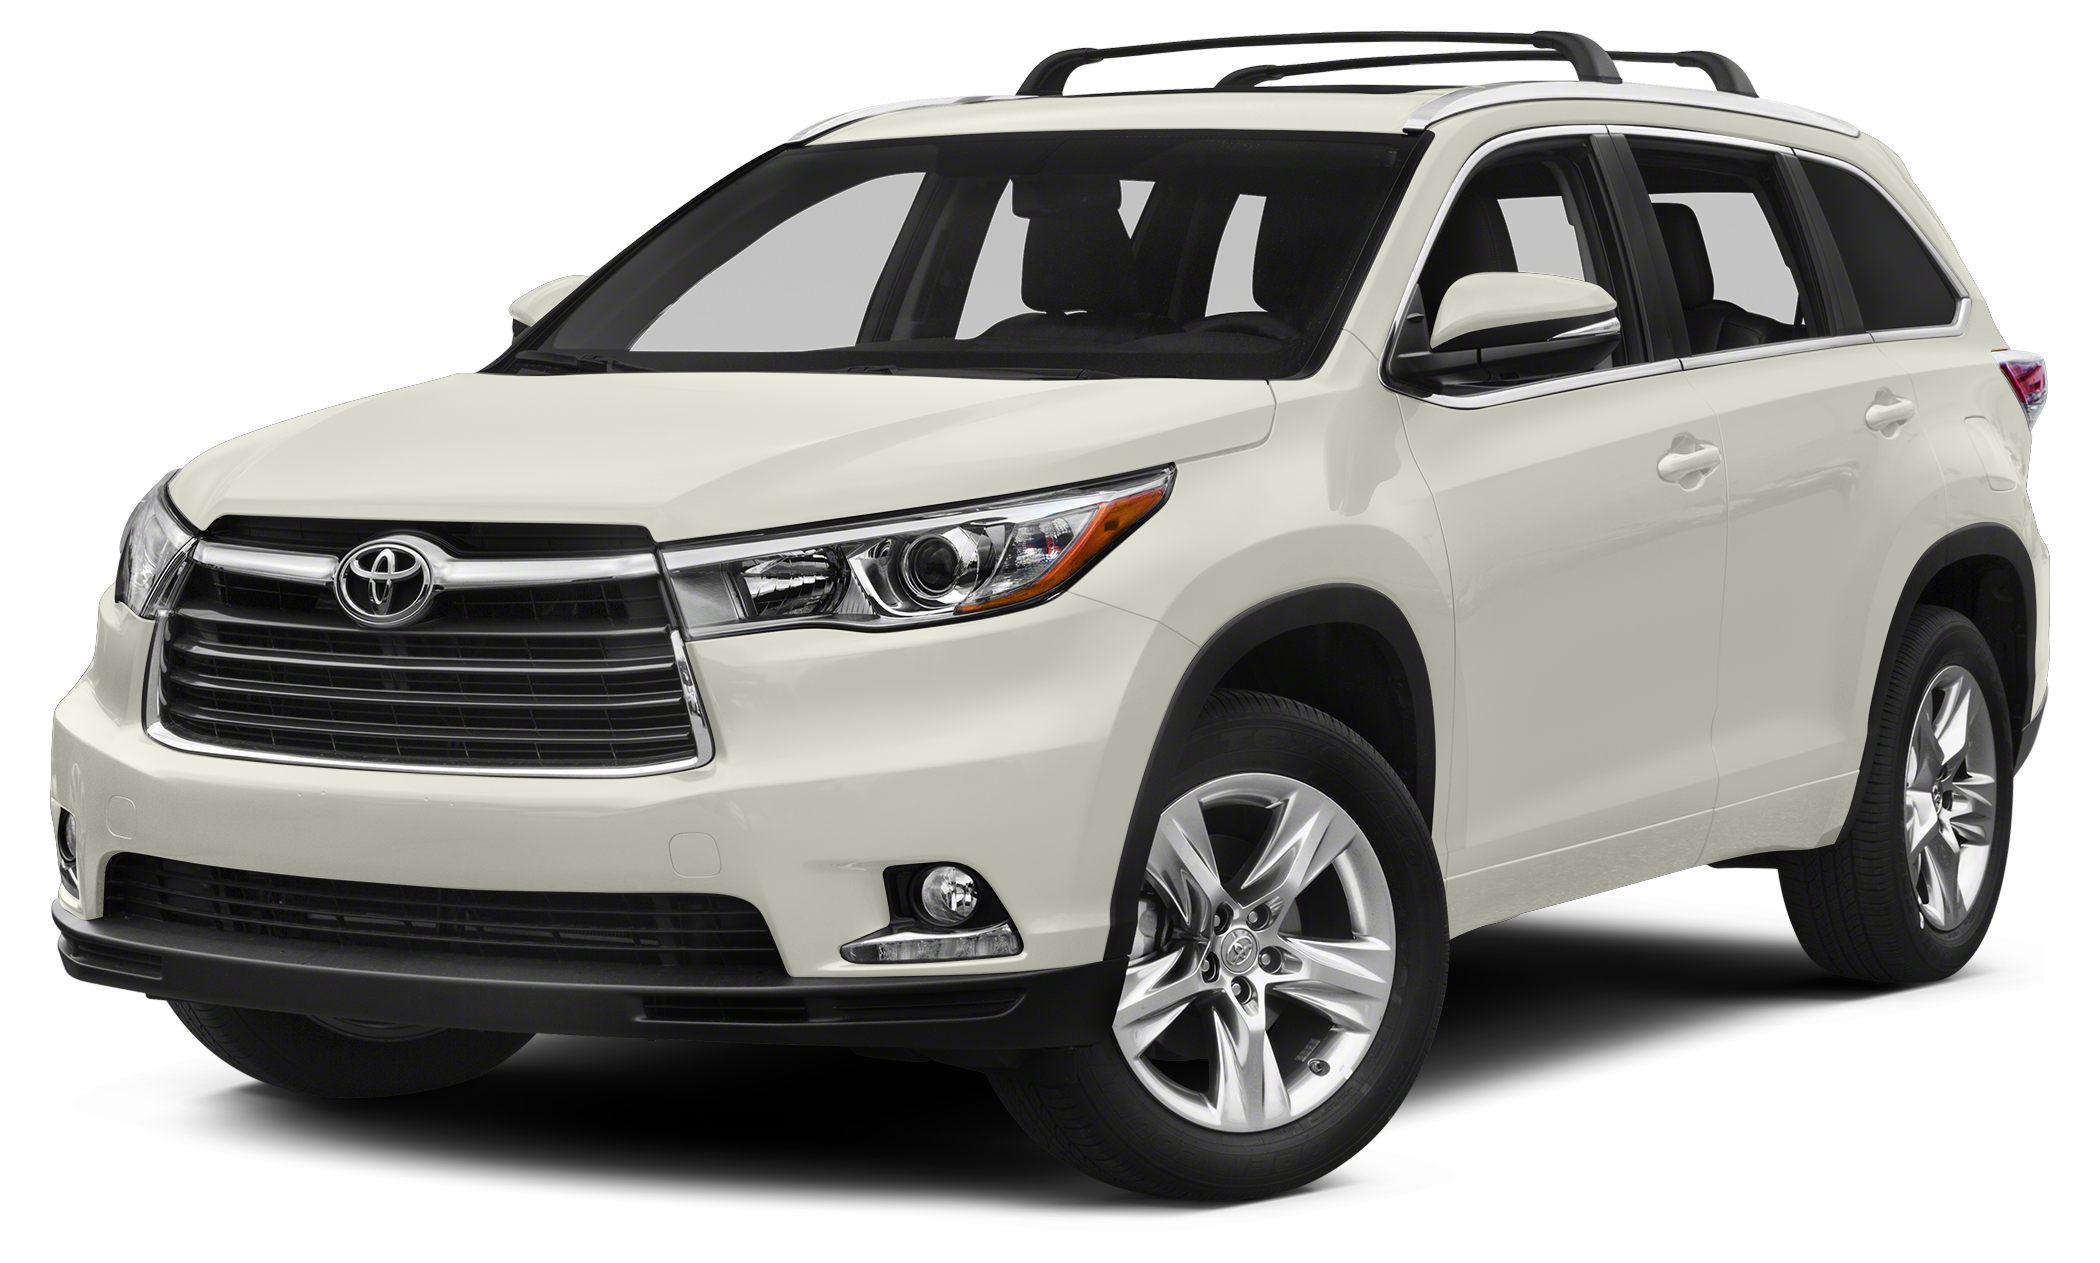 2014 Toyota Highlander Limited Platinum EPA 24 MPG Hwy18 MPG City 800 below Kelley Blue Book